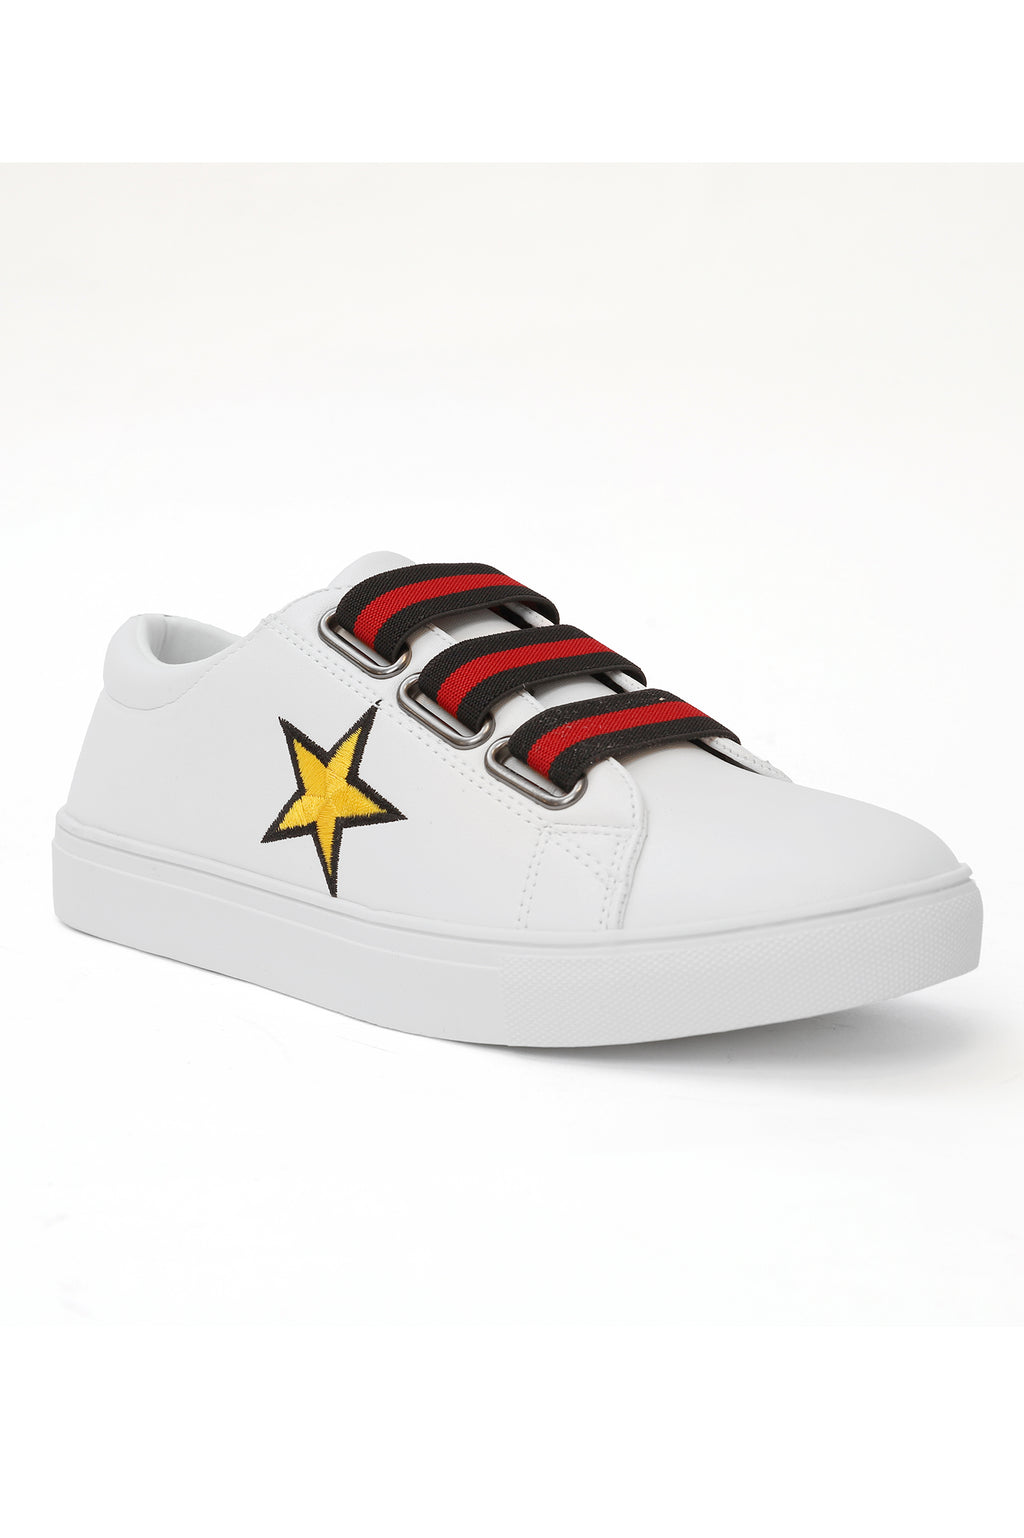 TRIPLE BAND SNEAKERS-WHITE